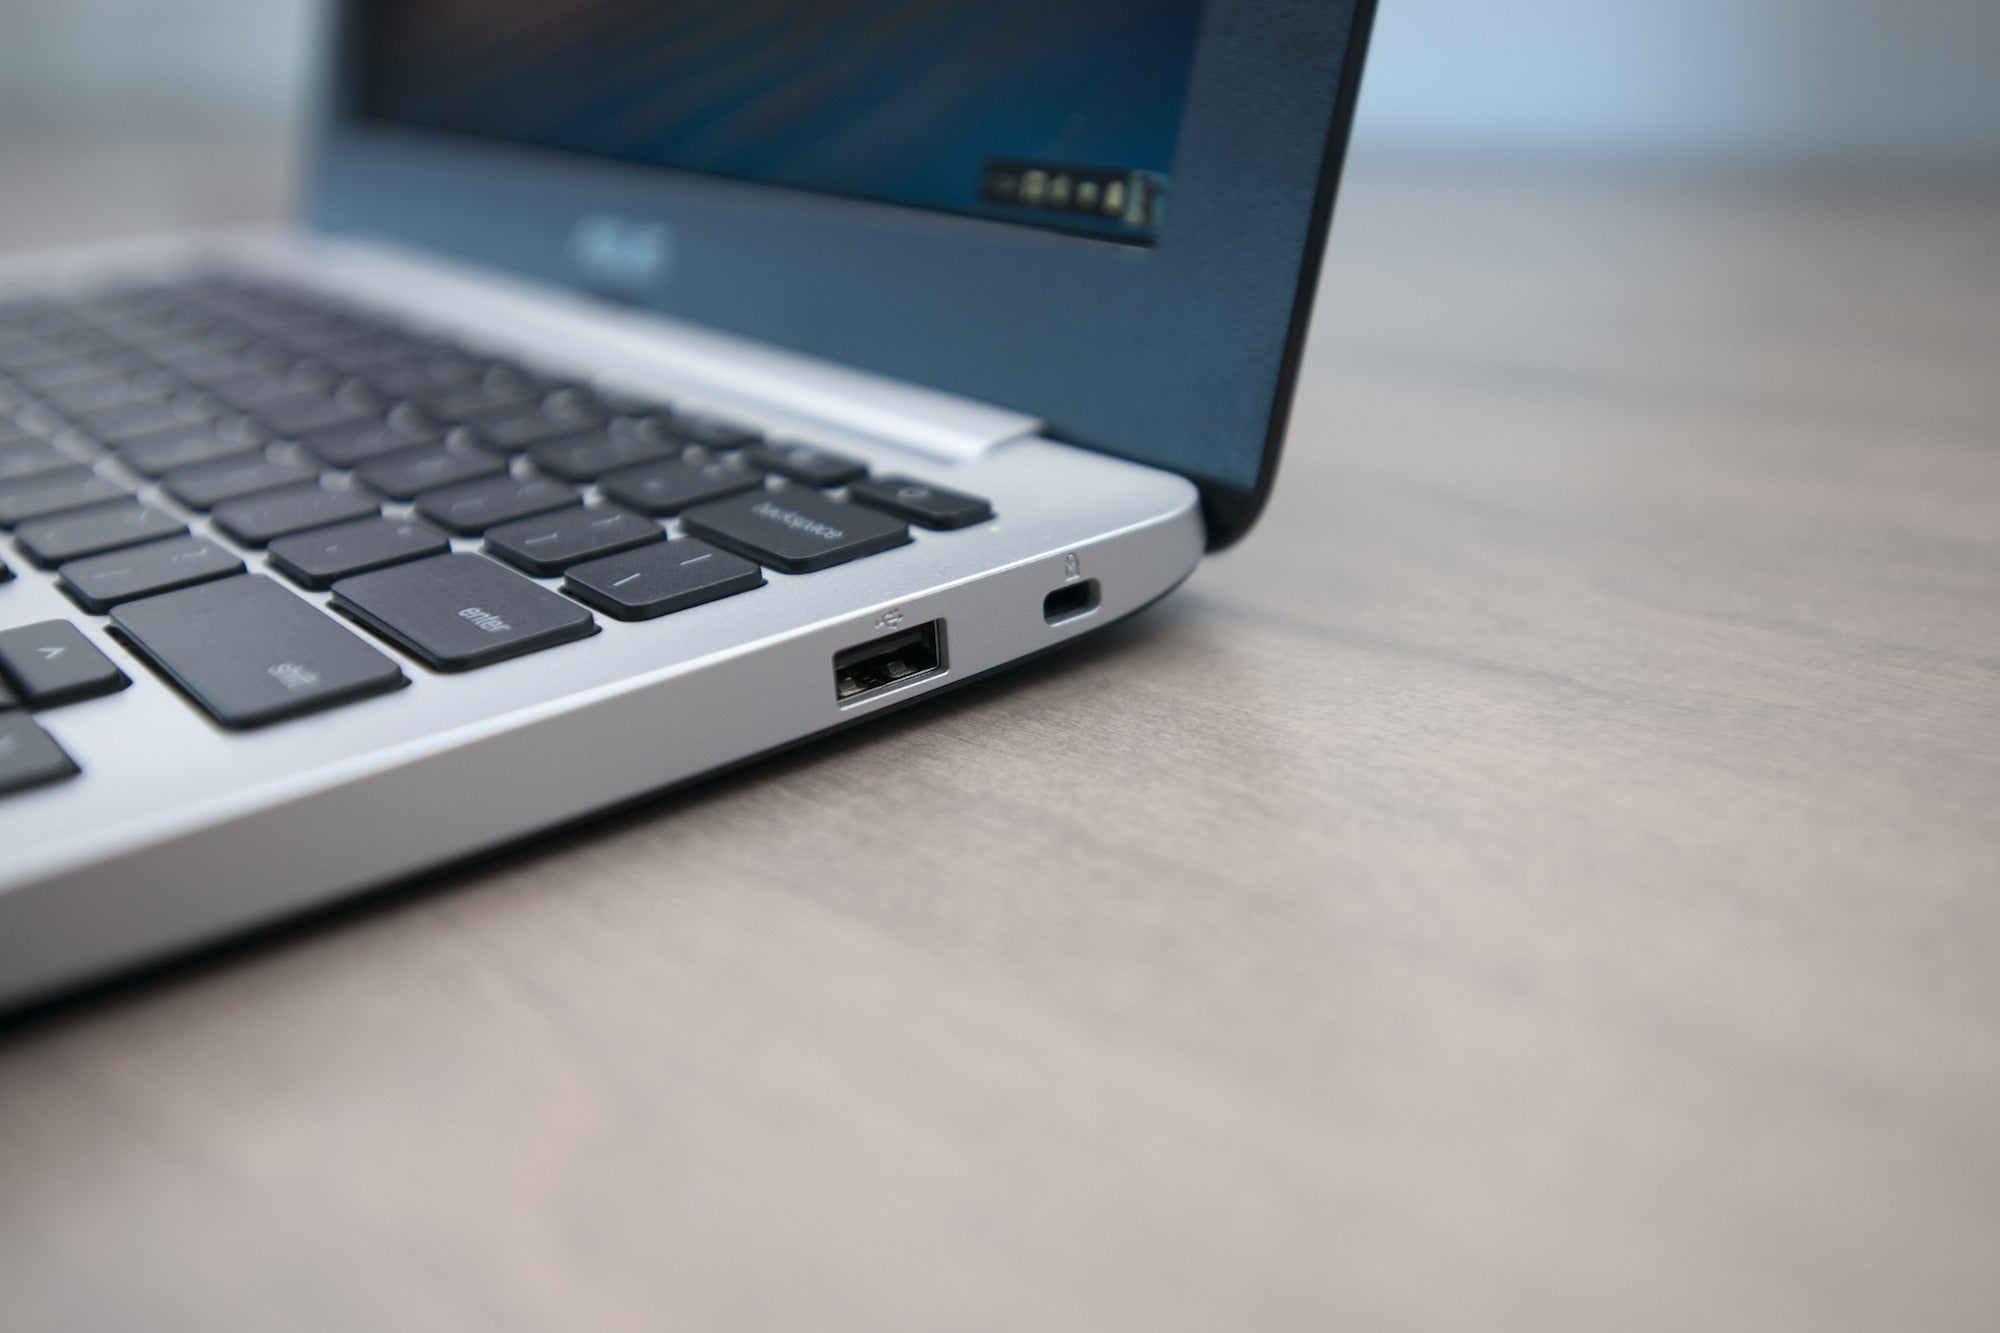 Asus Chromebook C200 review: A good deal at $249 | PCWorld